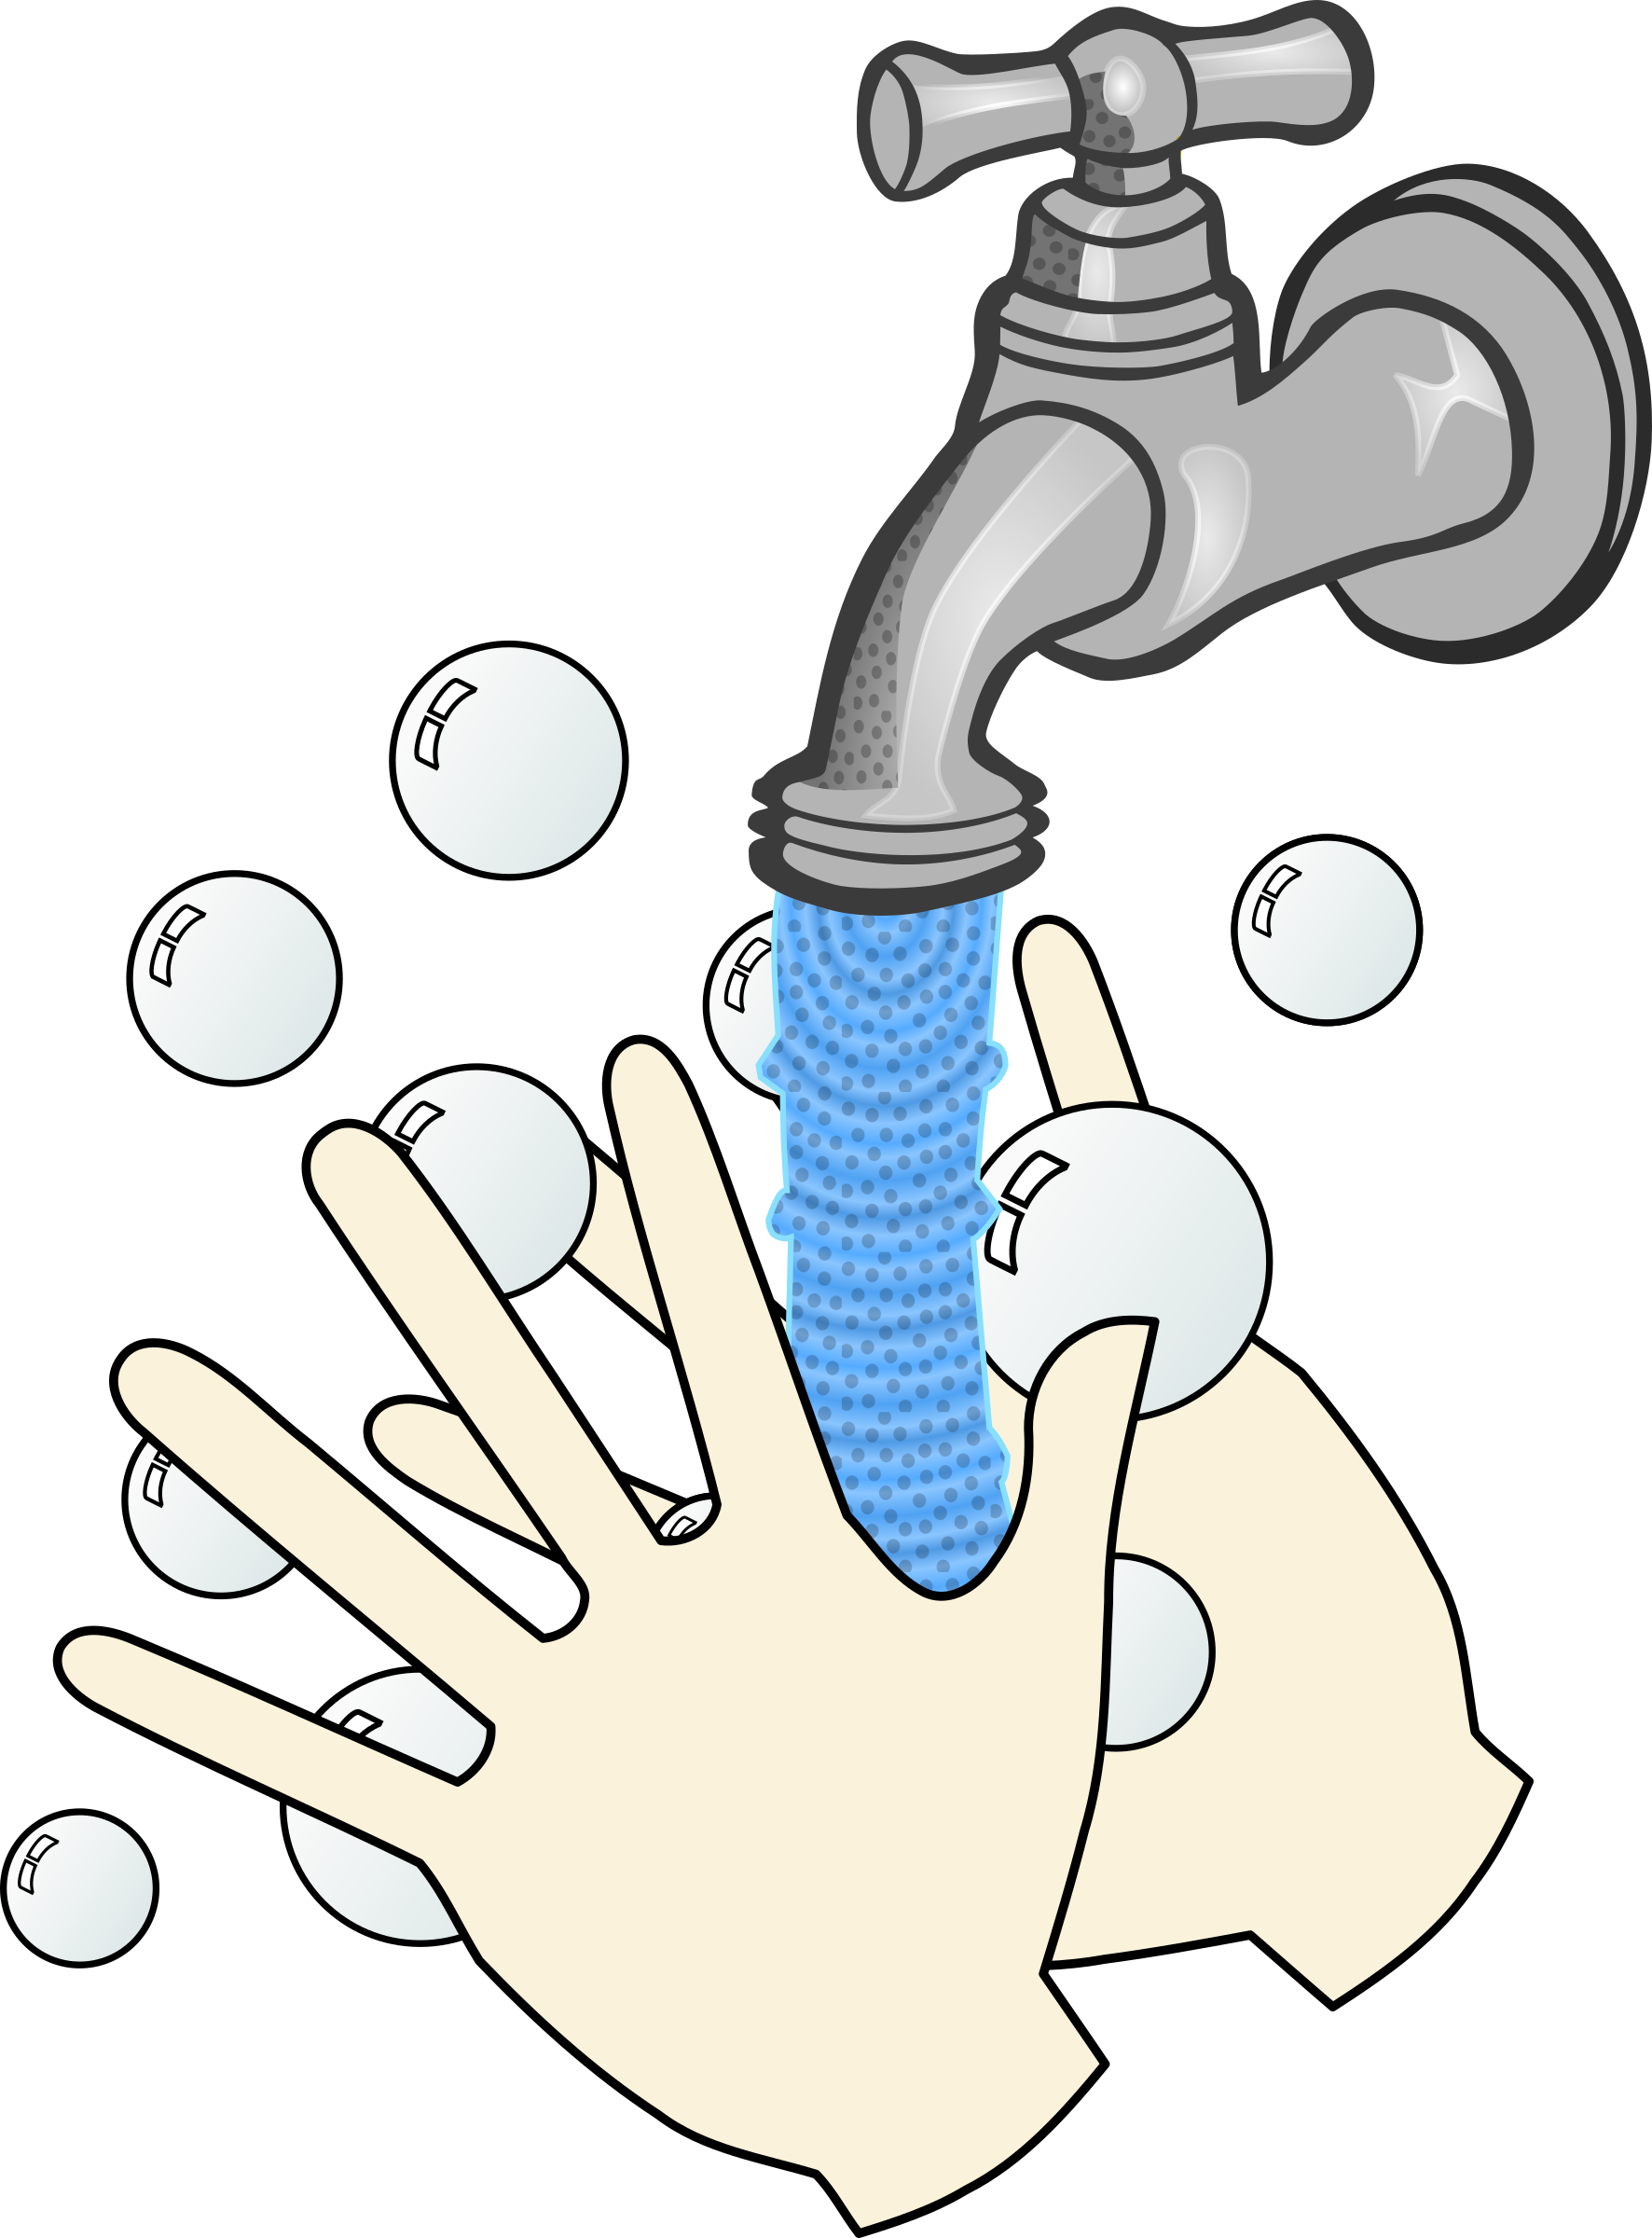 wash hands clipart background